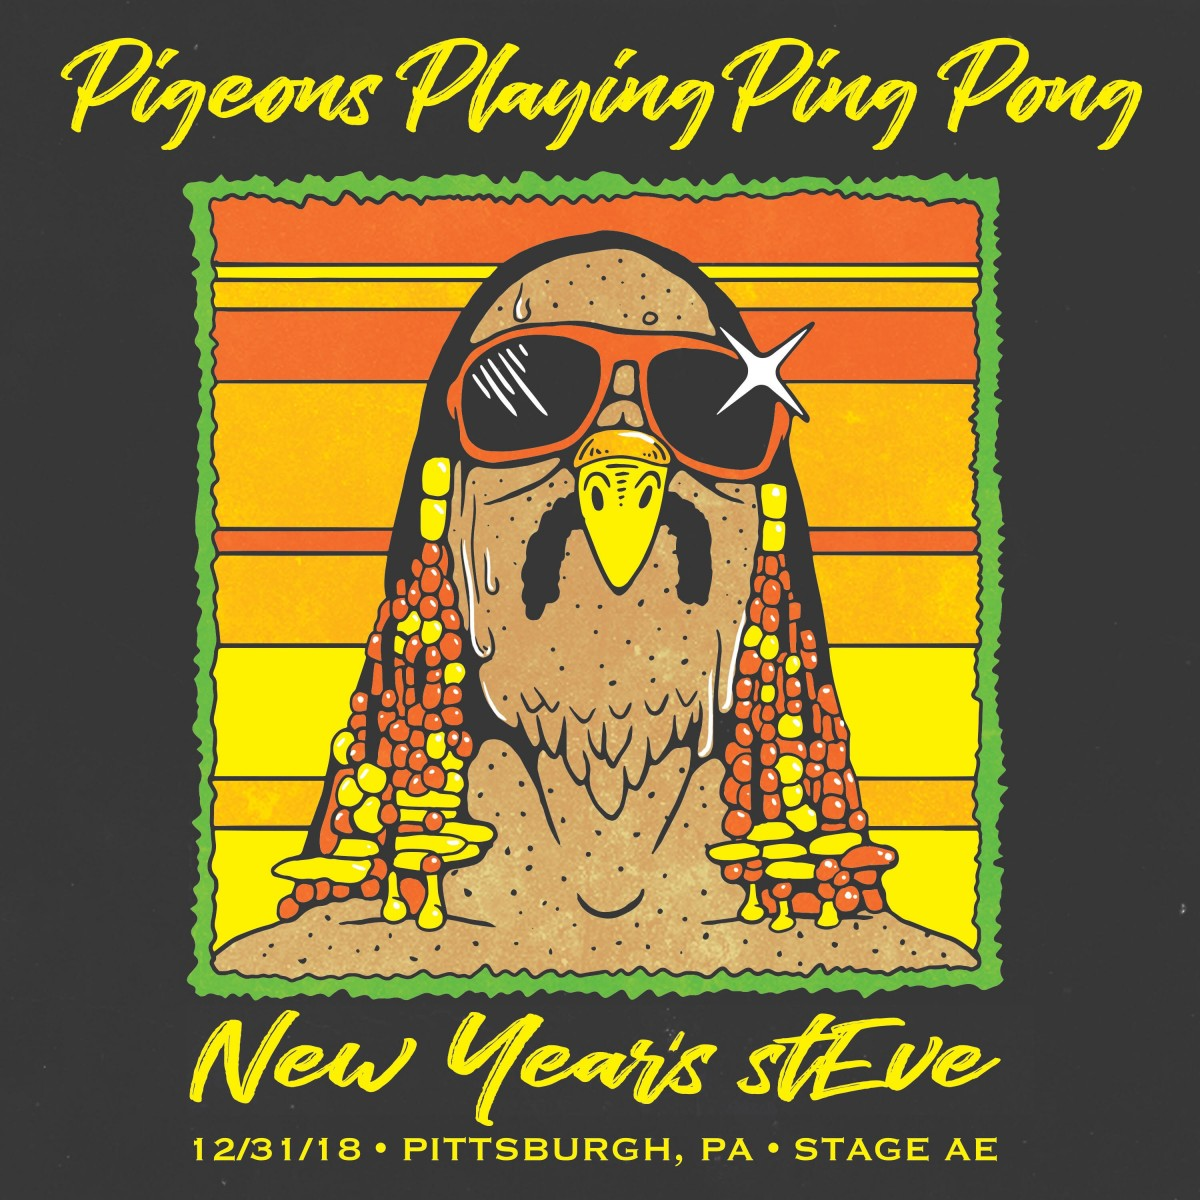 Pigeons Playing Ping Pong Reveals Theme for NYE shows